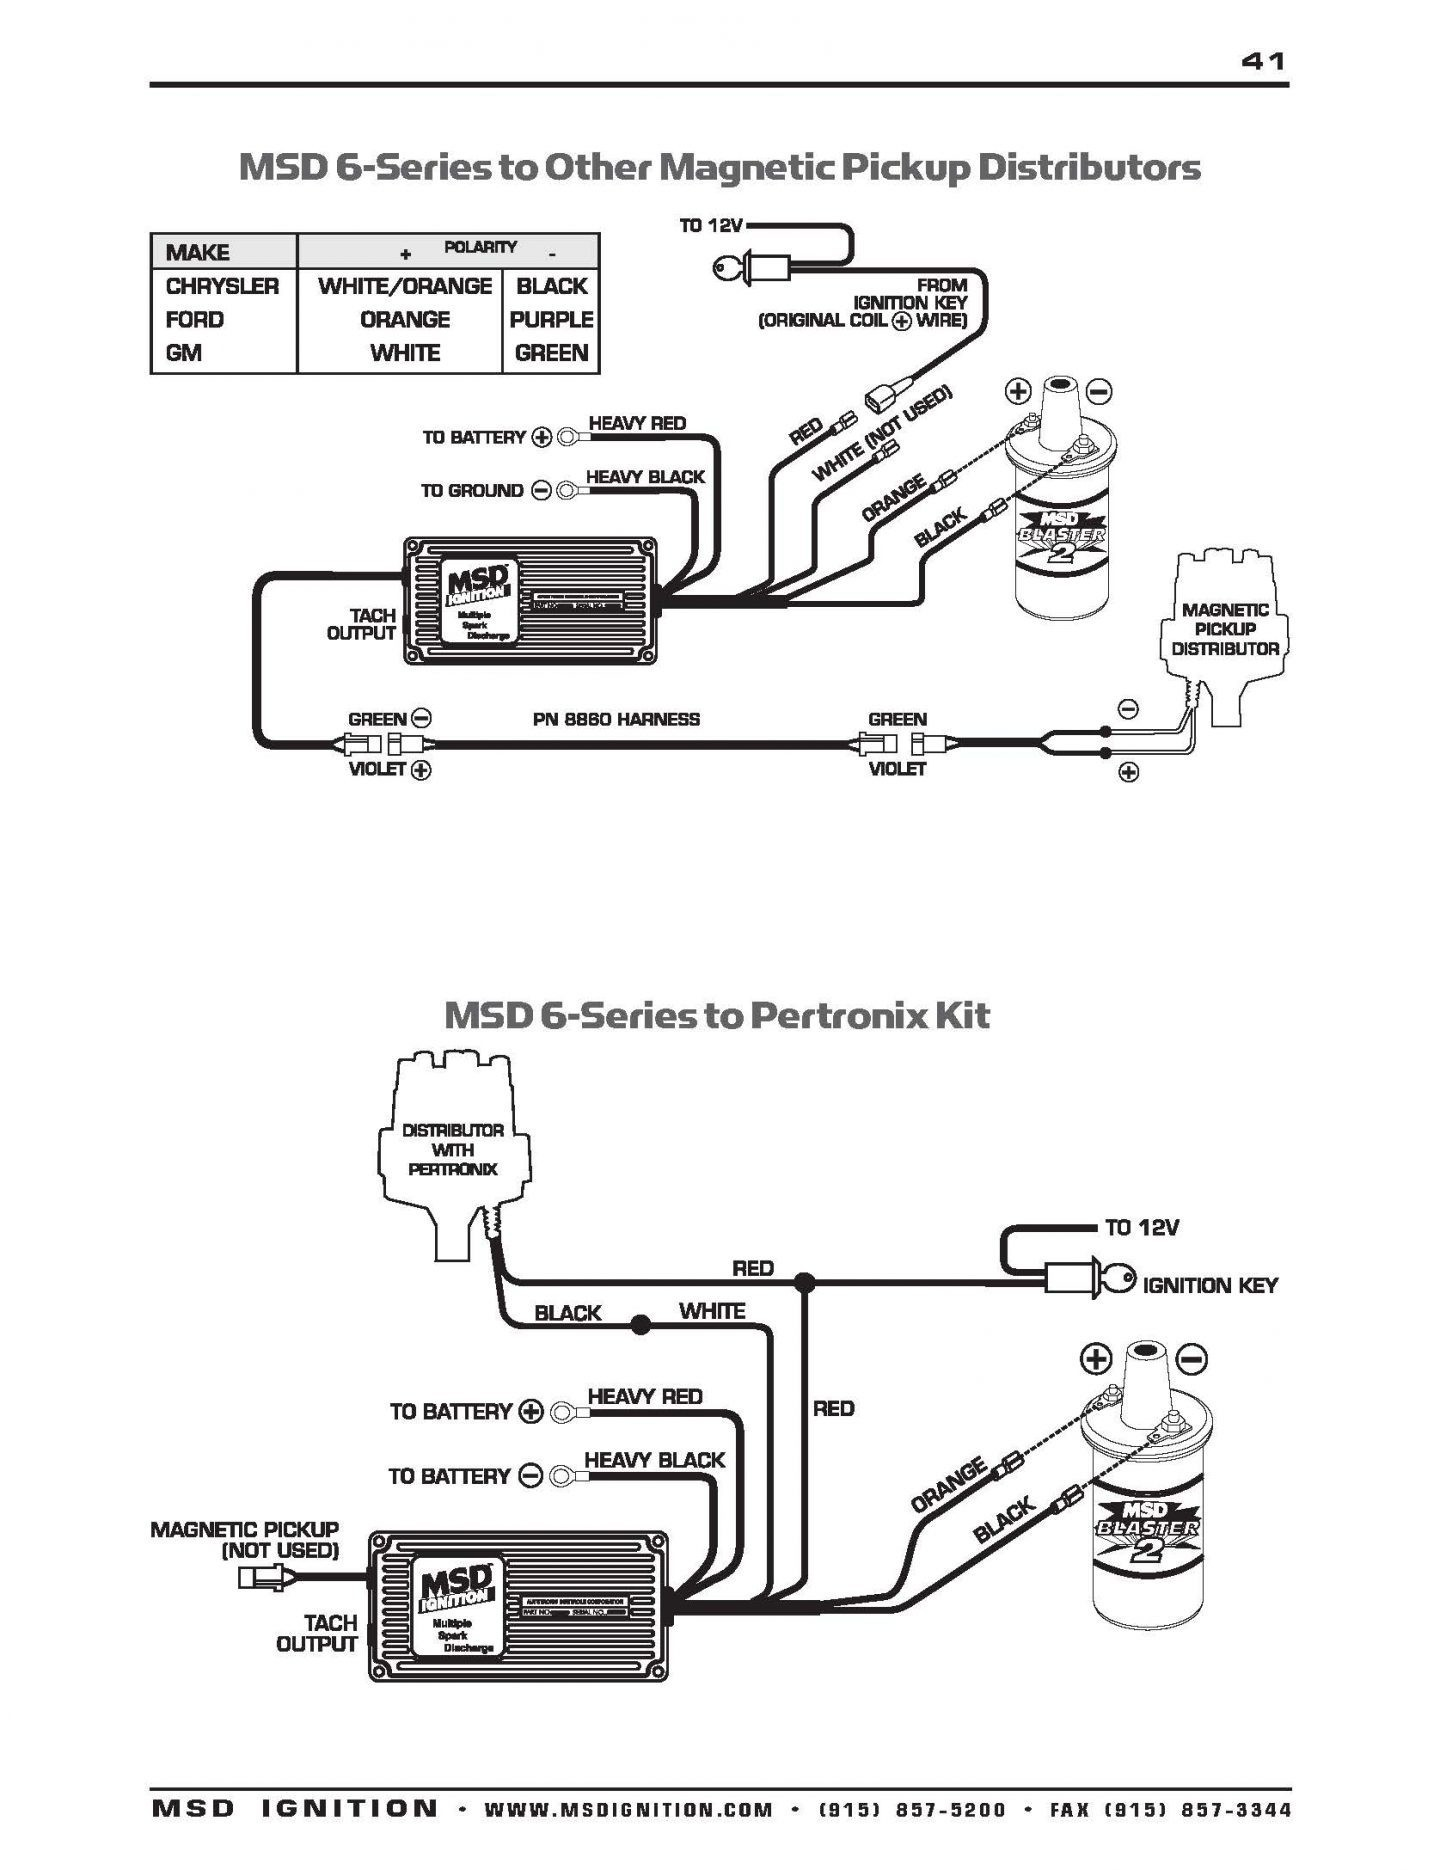 Msd Distributor Wiring Diagram Msd Ready to Run Distributor Wiring Diagram Technical Details and Of Msd Distributor Wiring Diagram